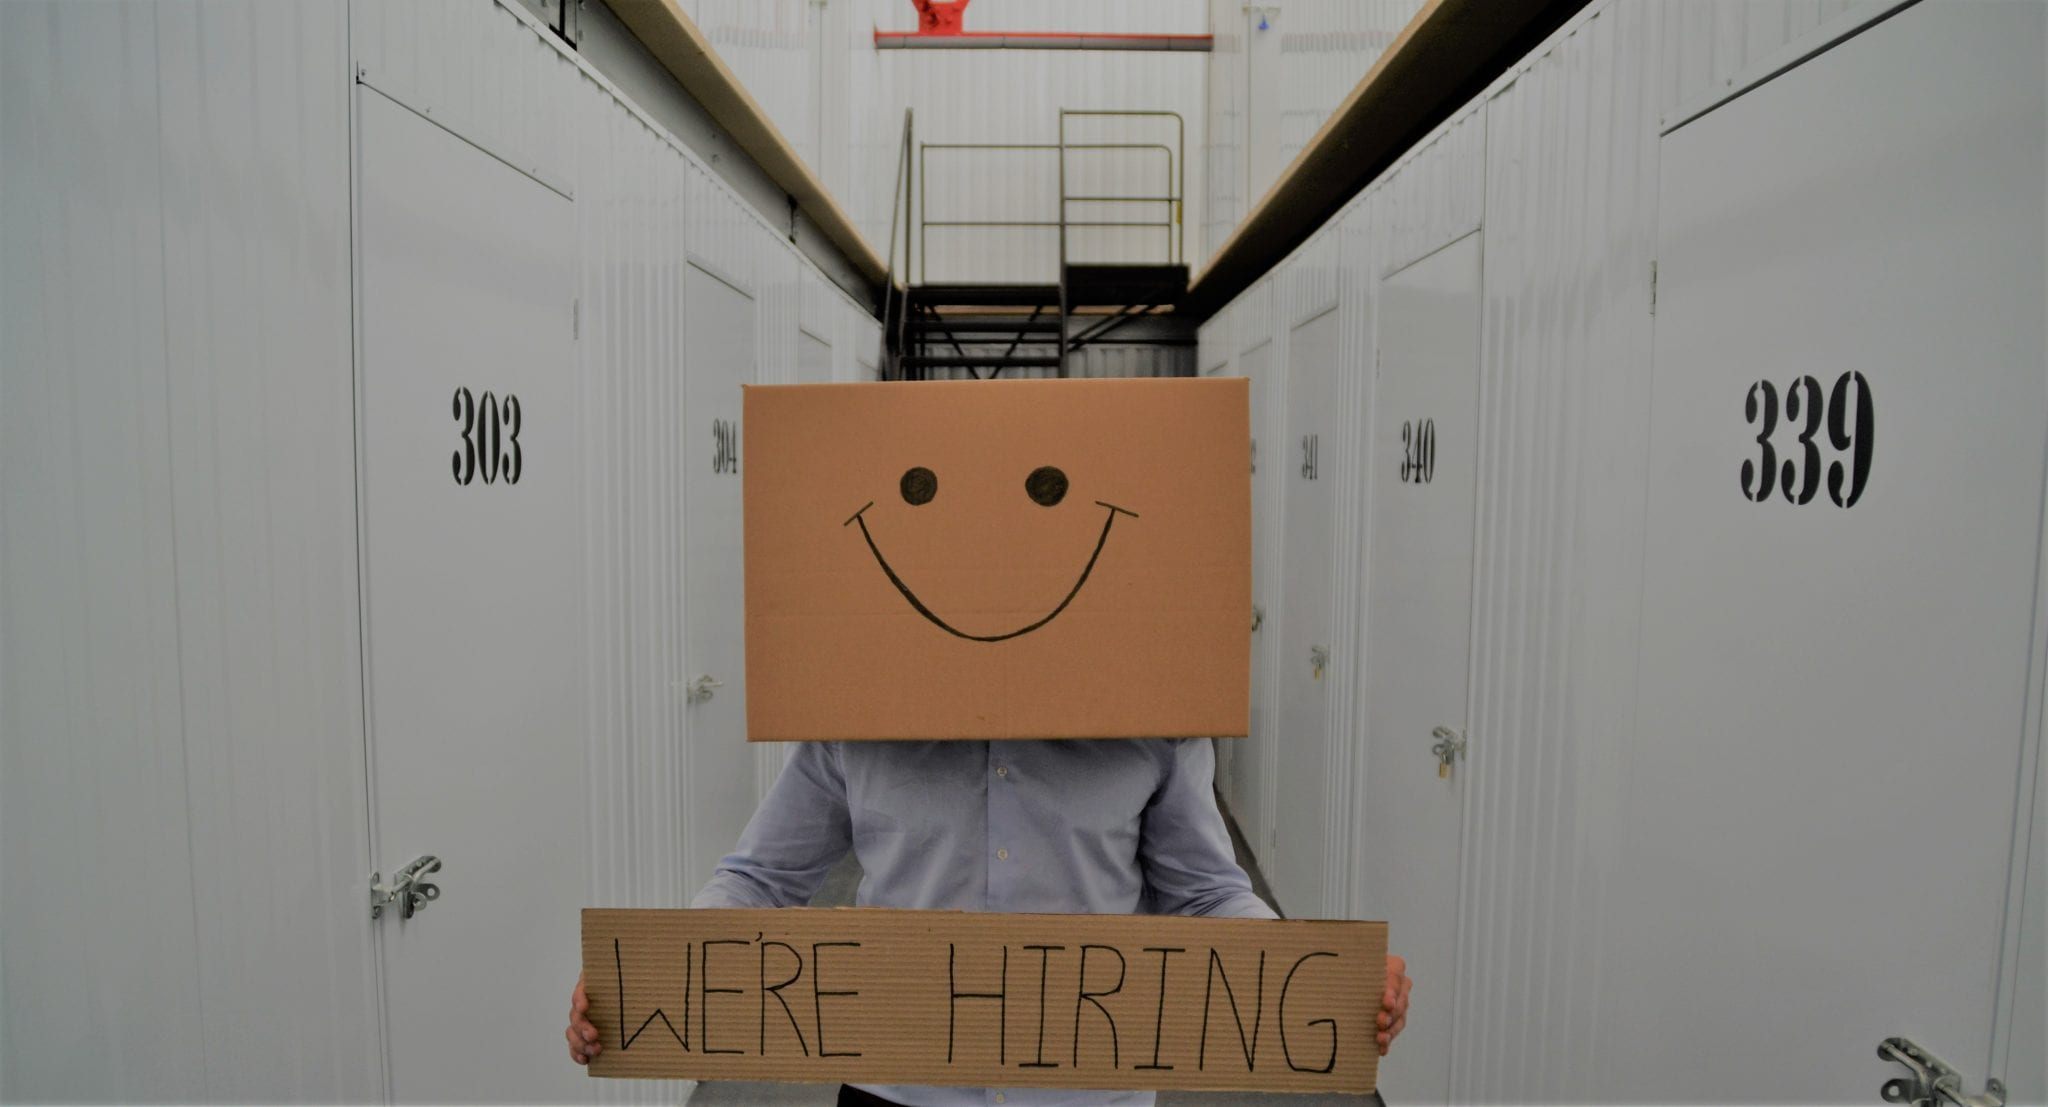 We're hiring a manager